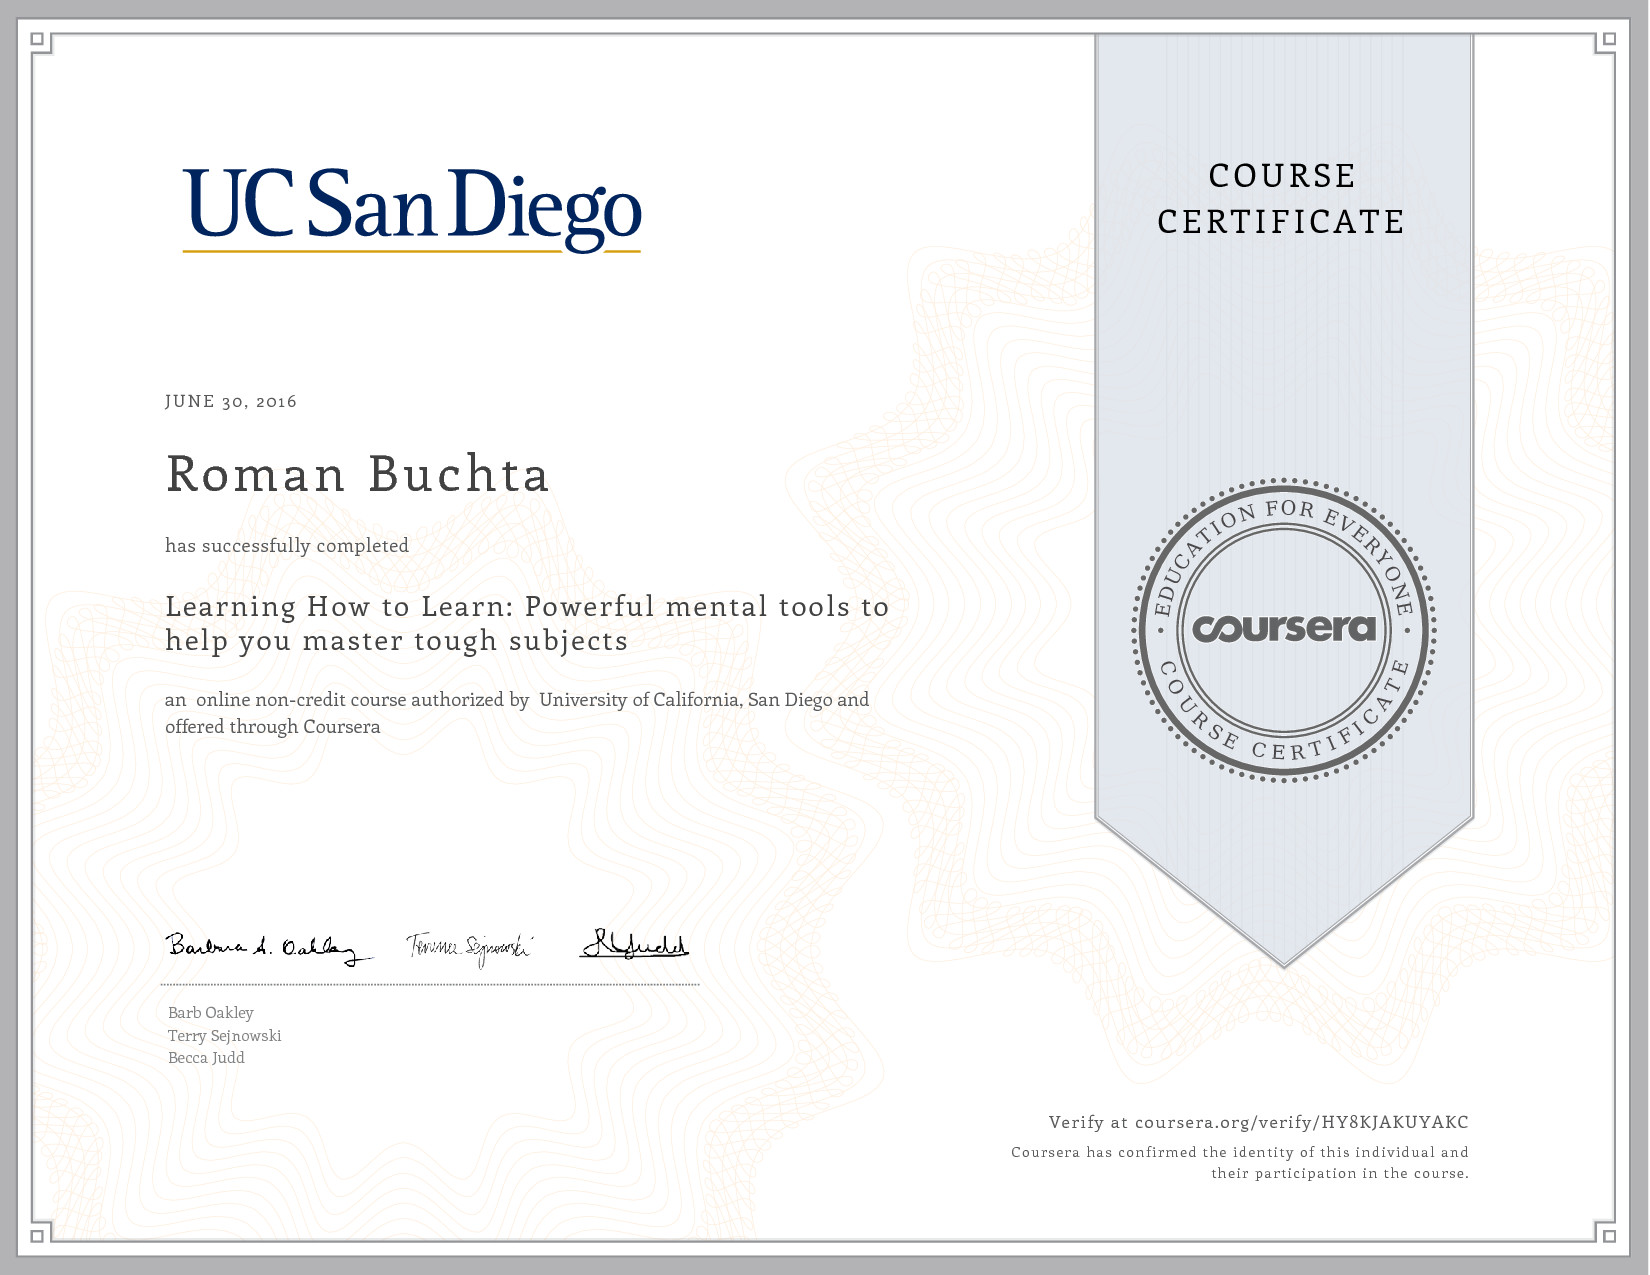 Certificat-mooc-coursera-Learn-how-to-learn-Roman-Buchta